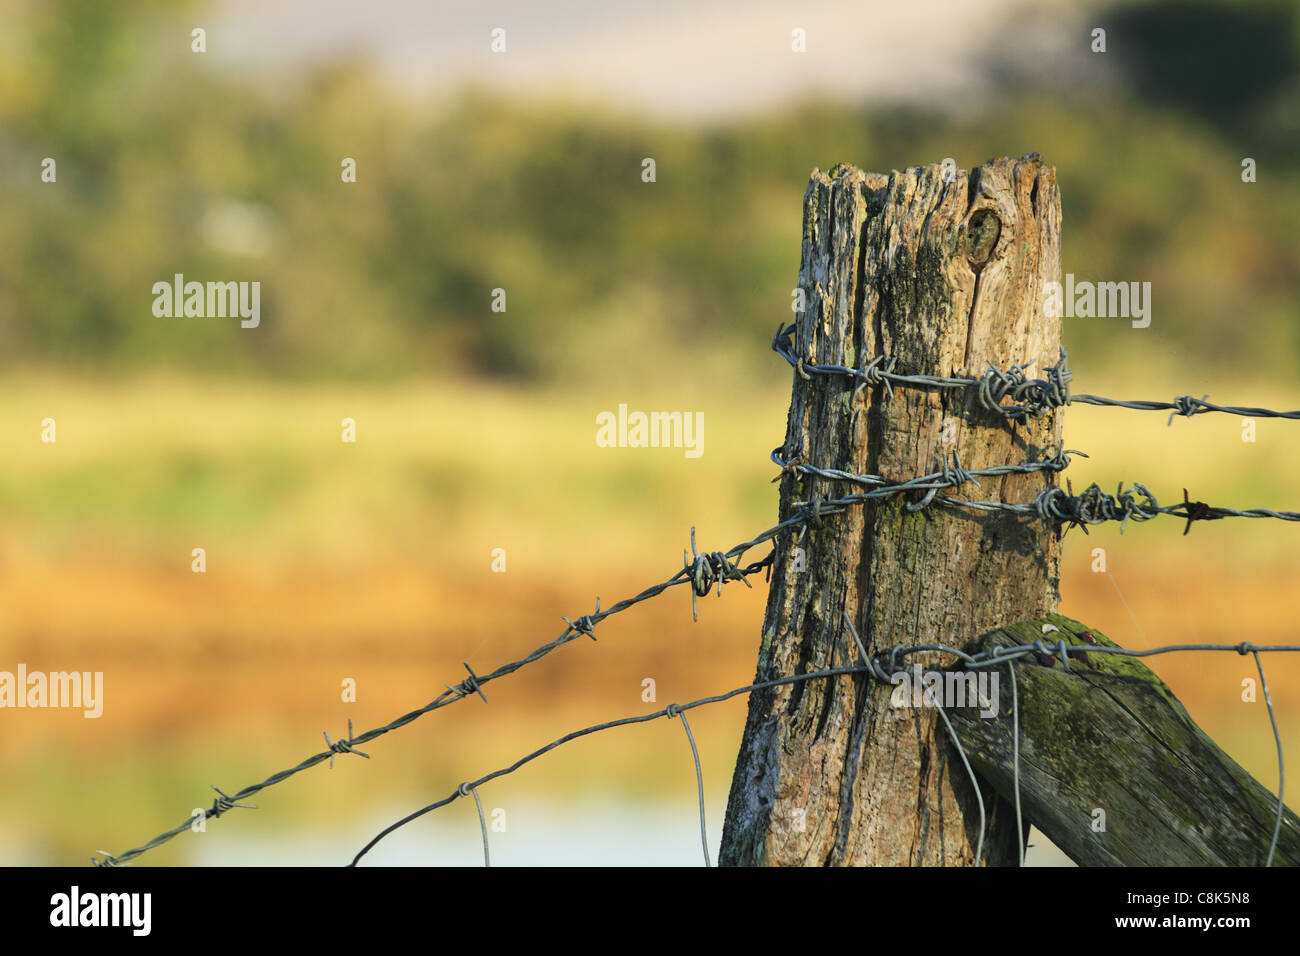 A straining post in a fence. - Stock Image